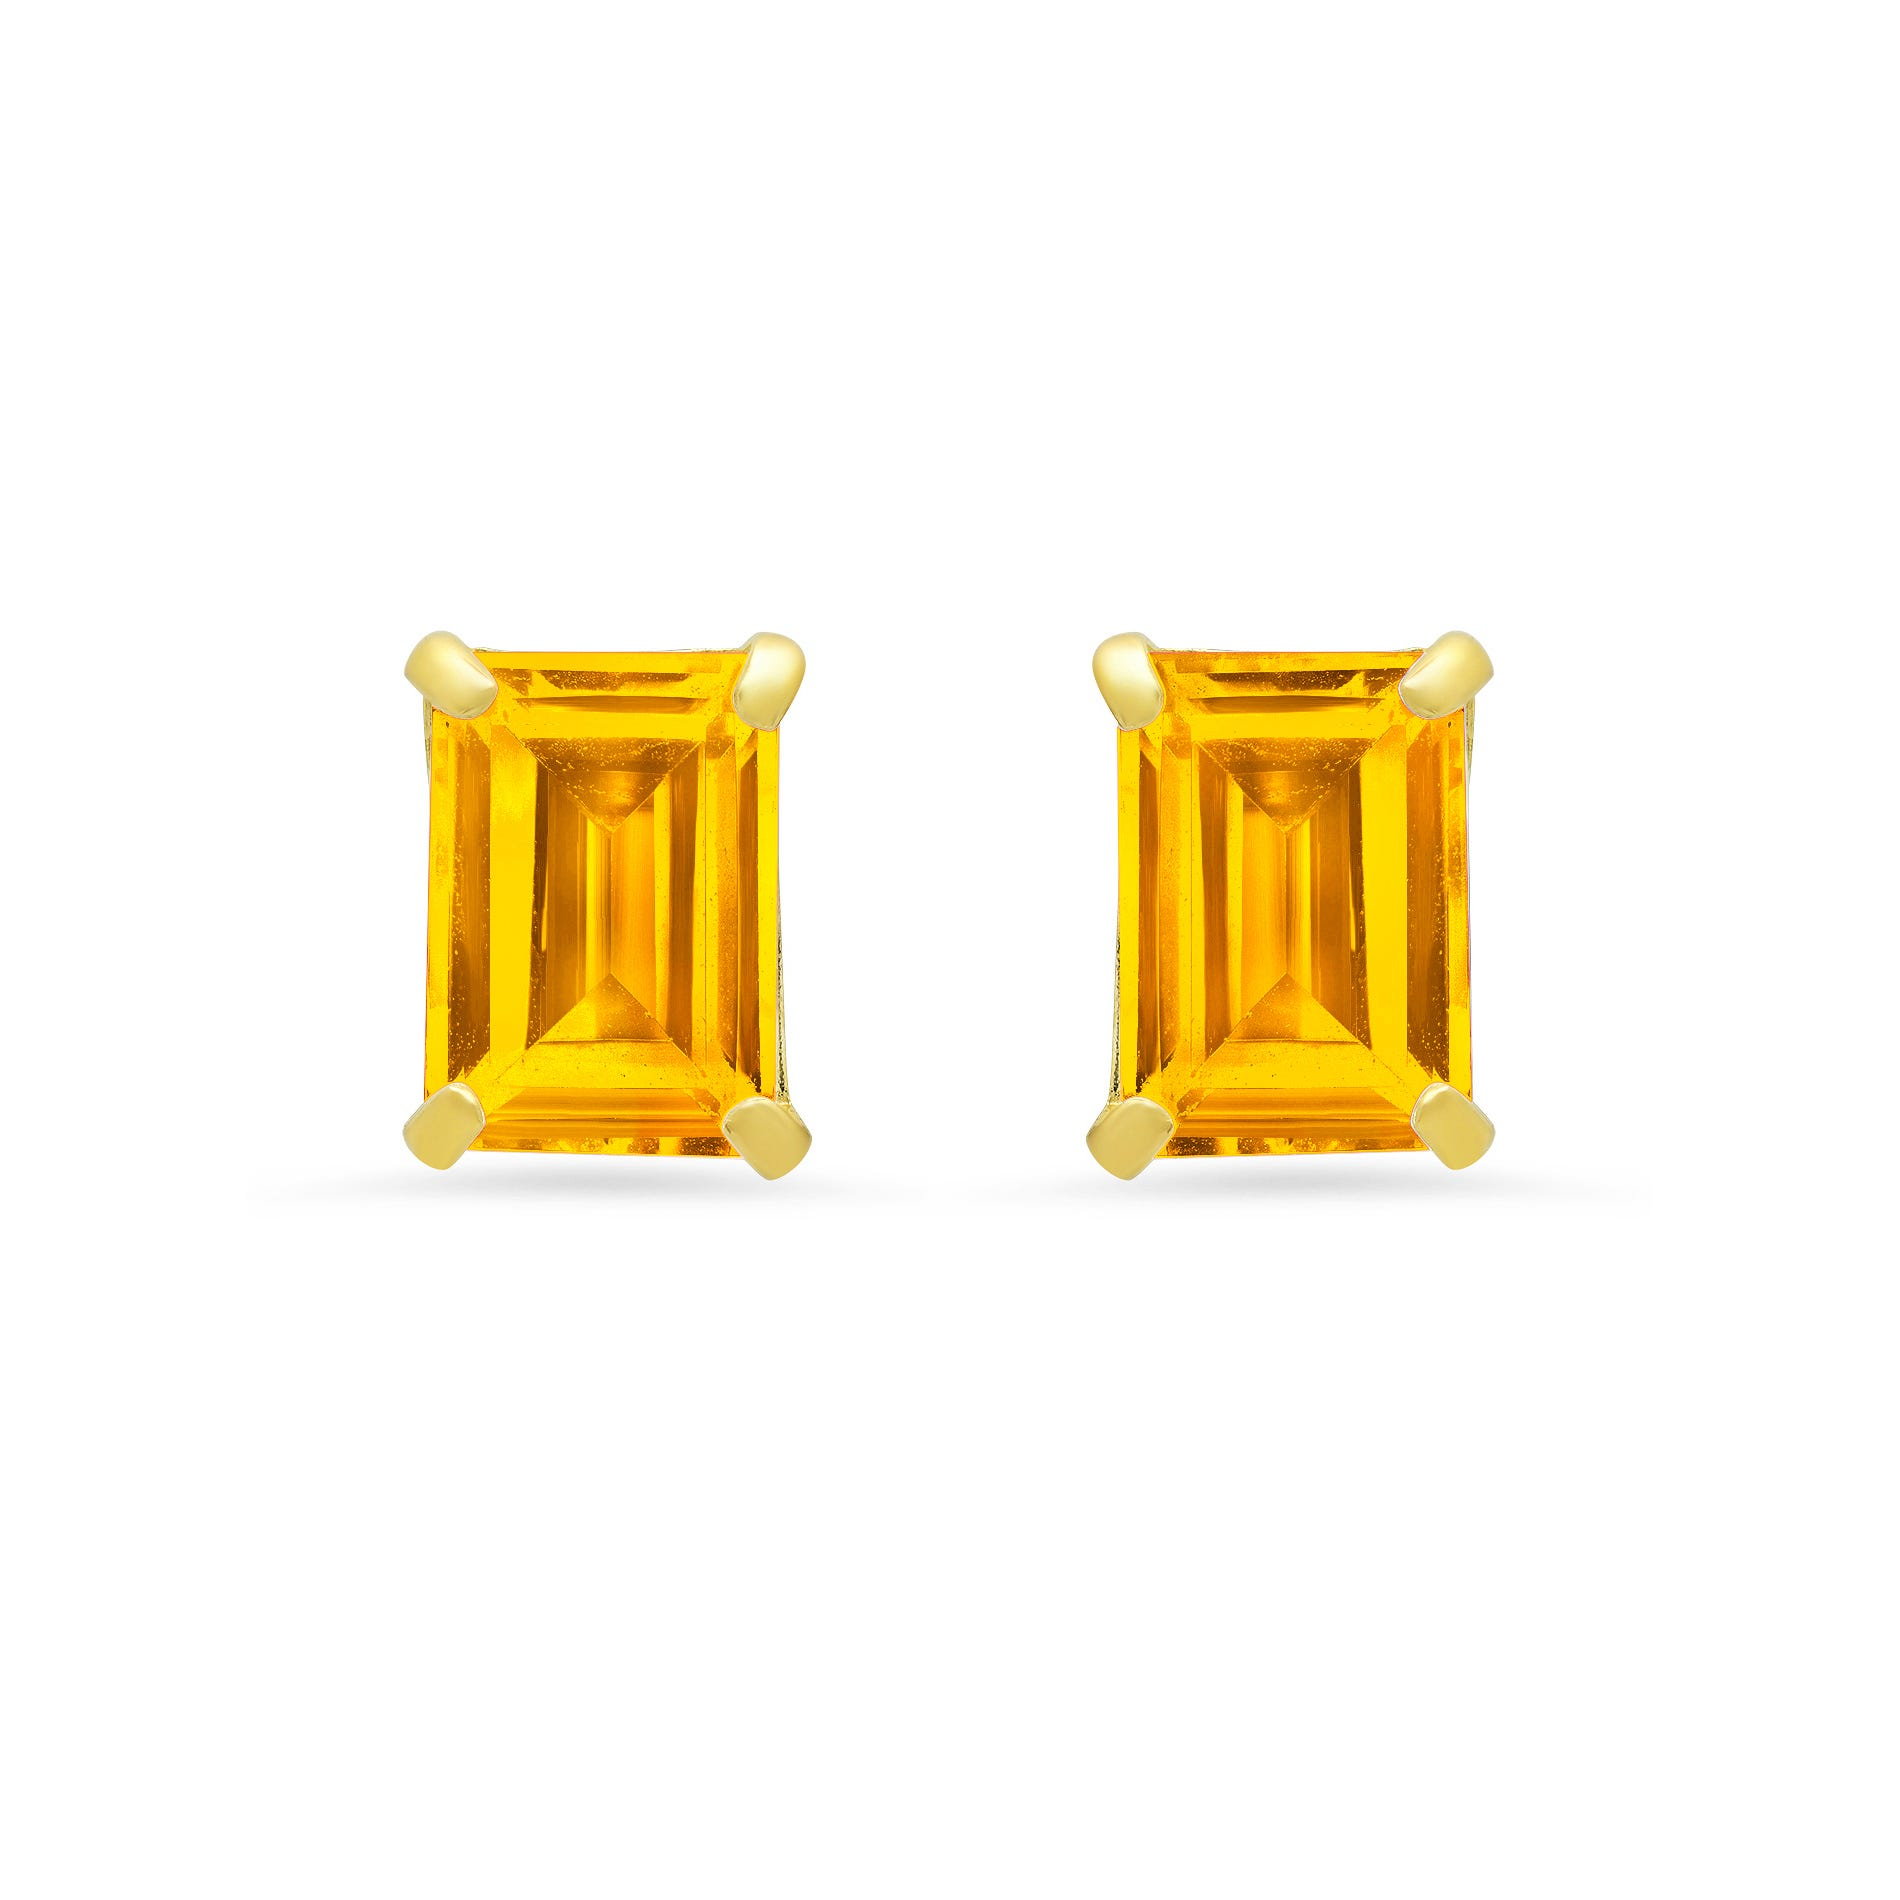 Emerald-Cut Citrine Solitaire Stud Earrings in 14k Yellow Gold